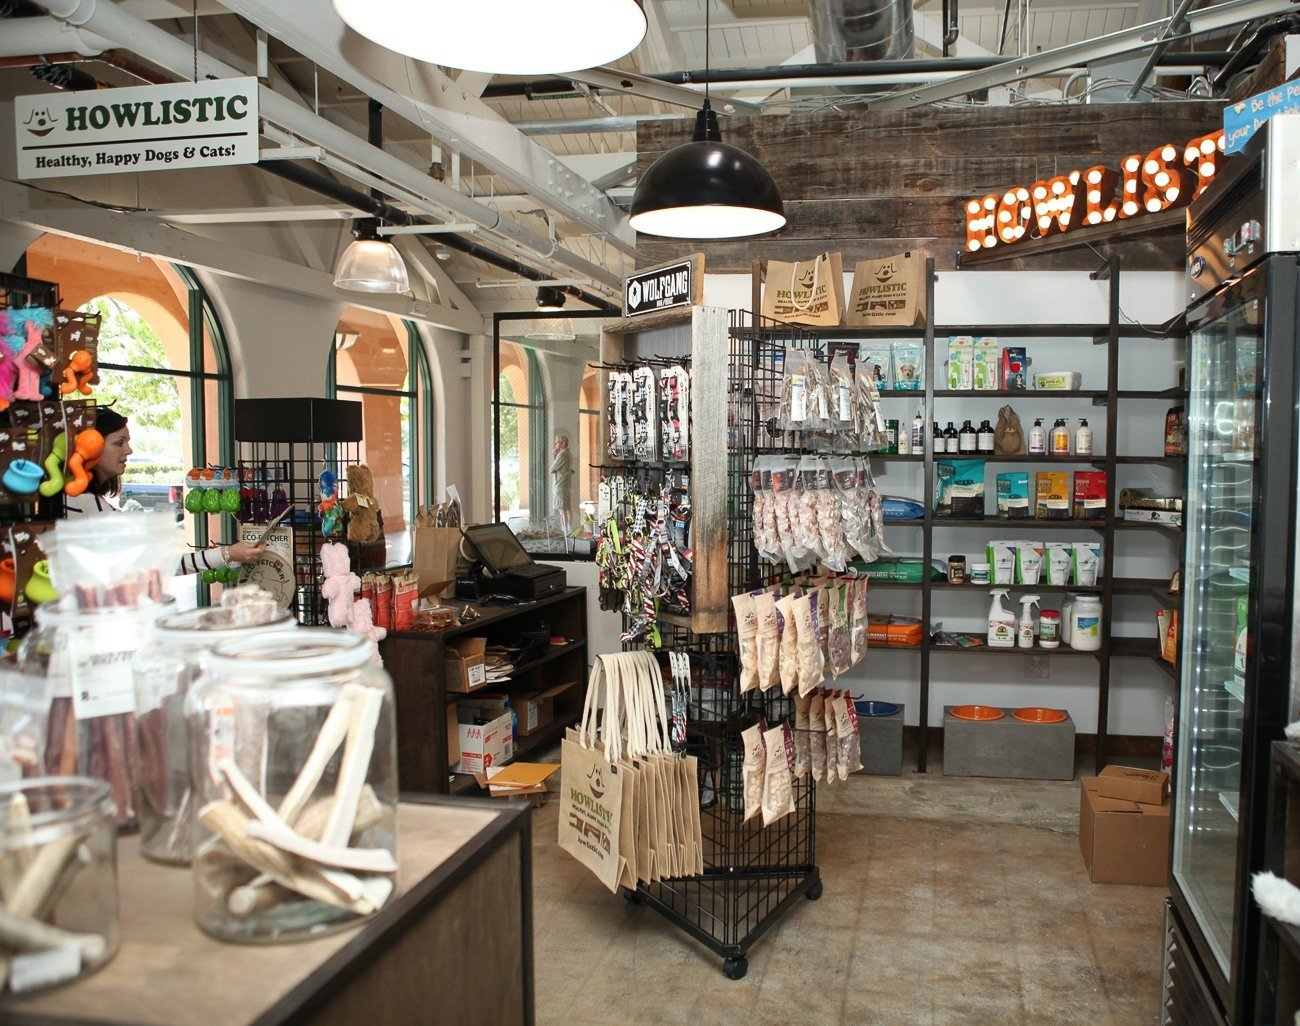 A store just for dogs (and their humans) called Howlistic at Liberty Public Market in San Diego